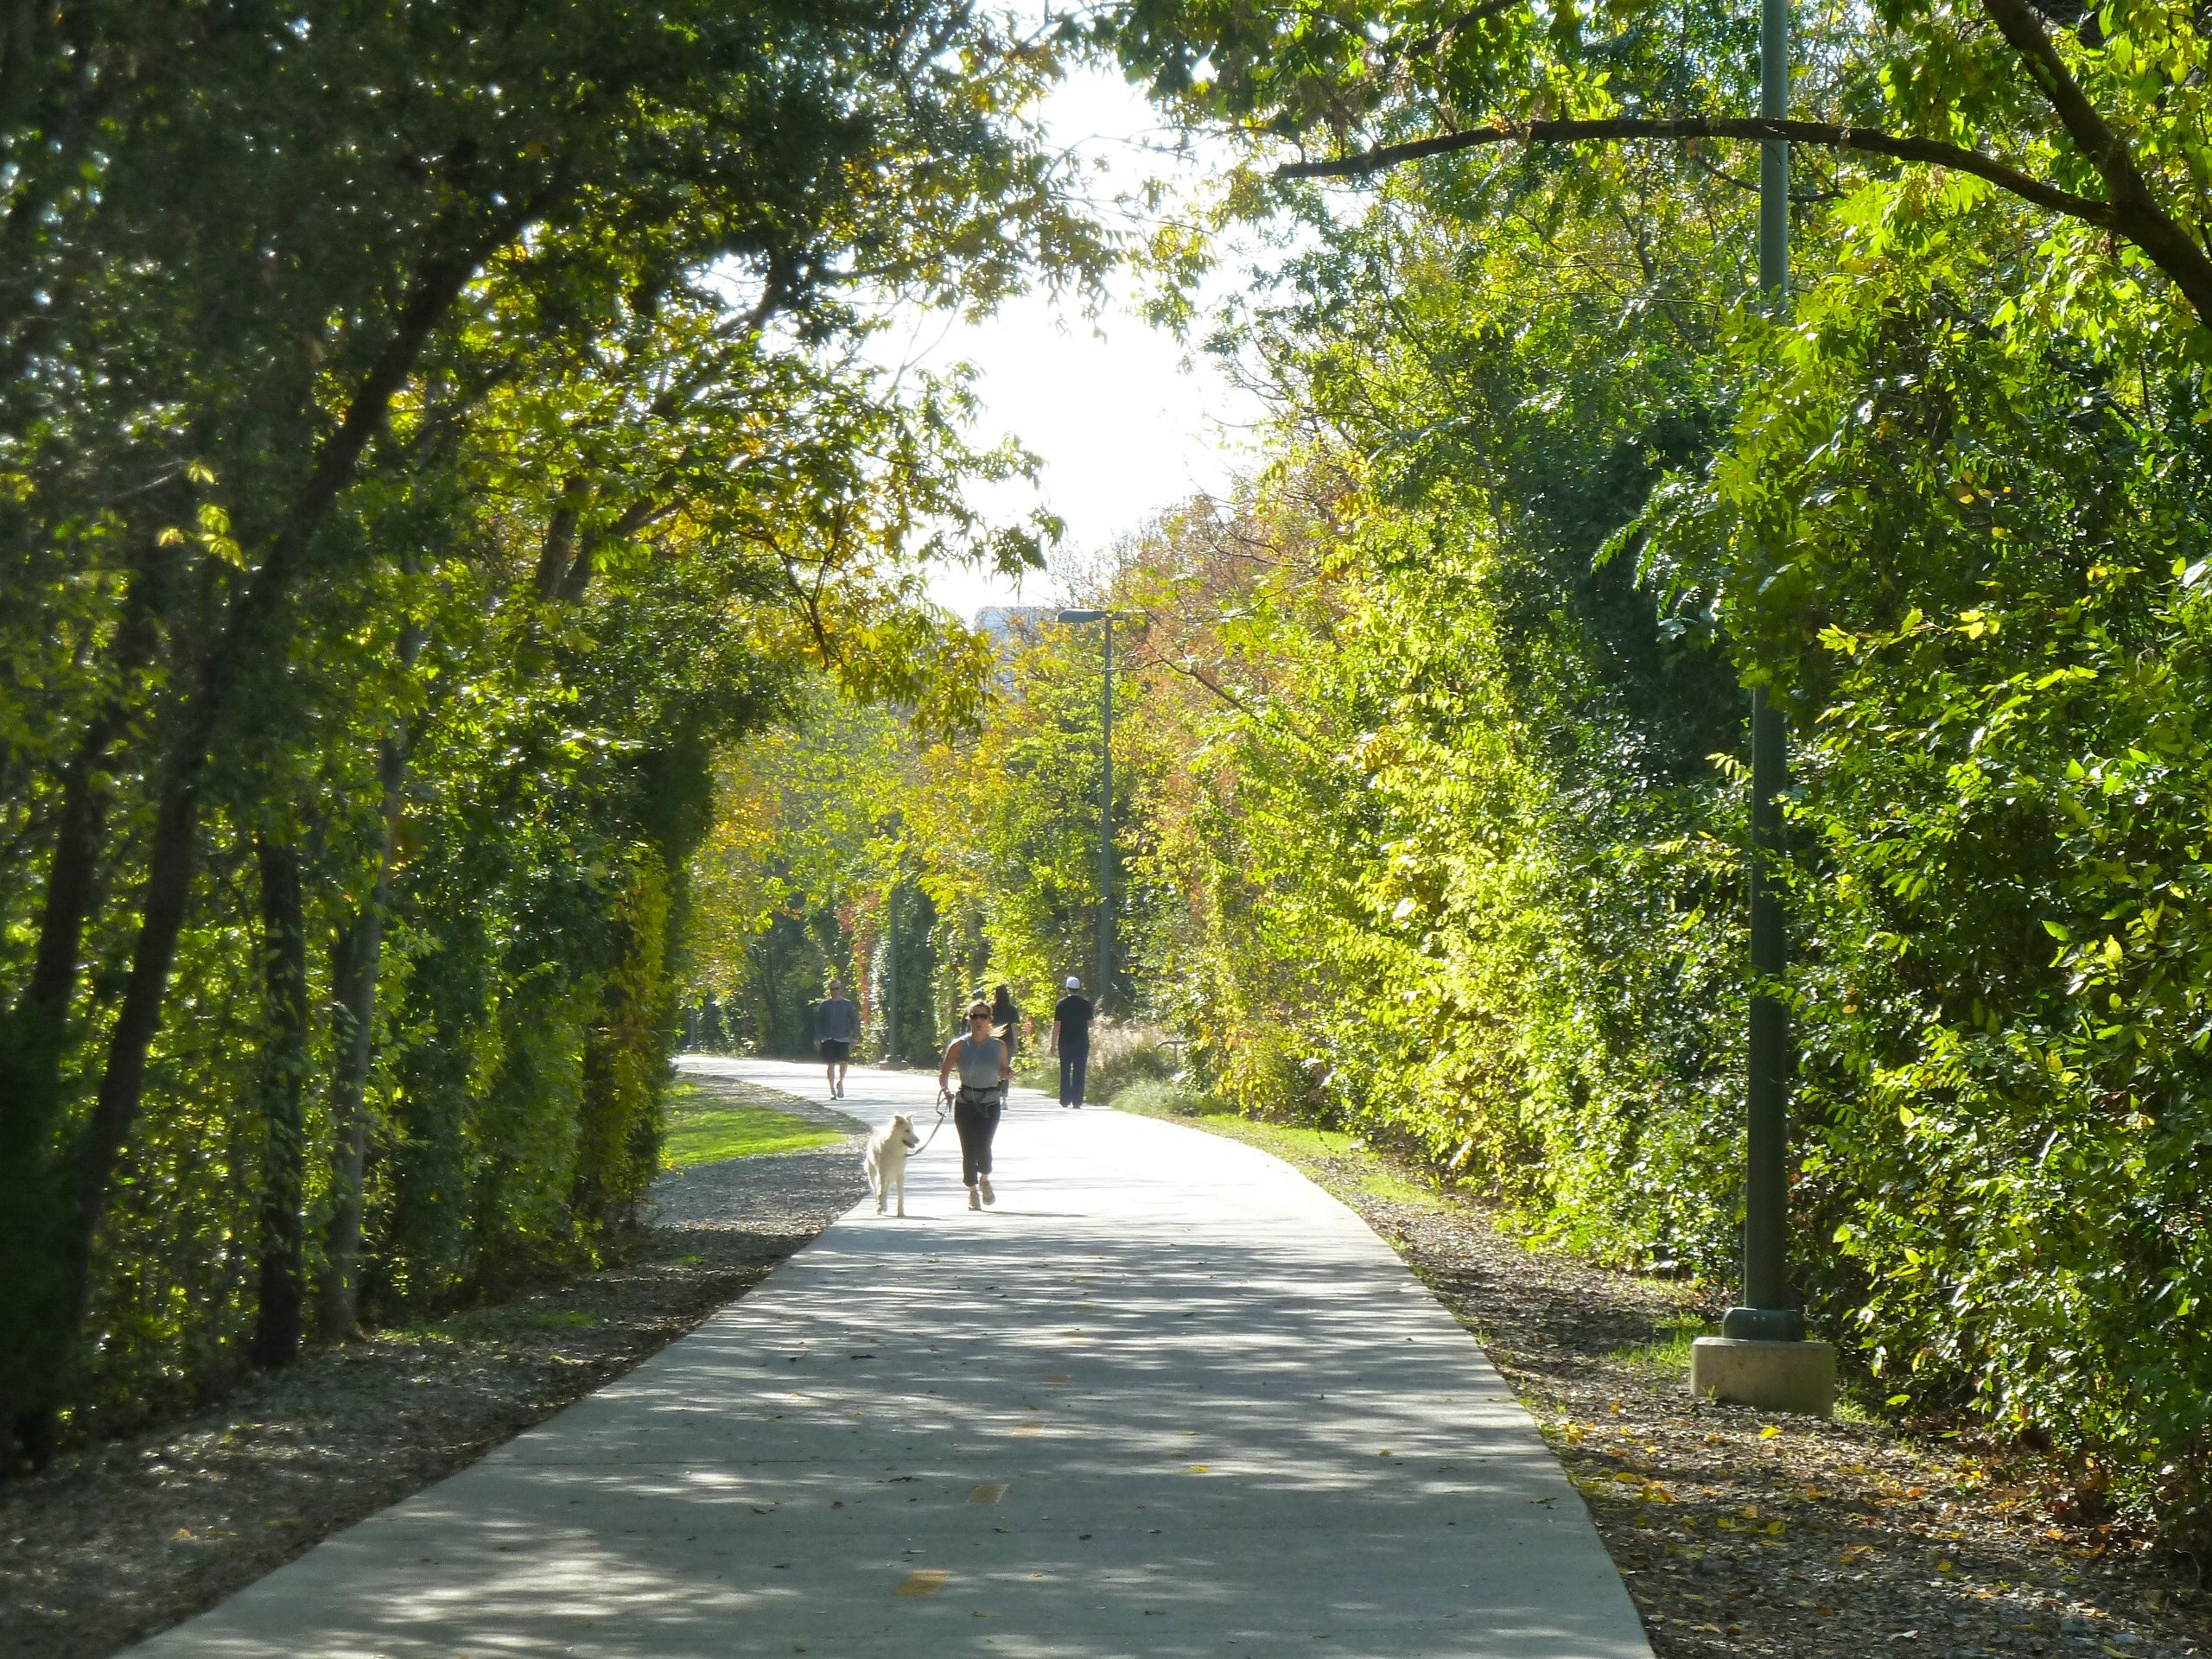 Wallpaper Sioux Falls Katy Trail Wins Urban Land Institute Award For Best